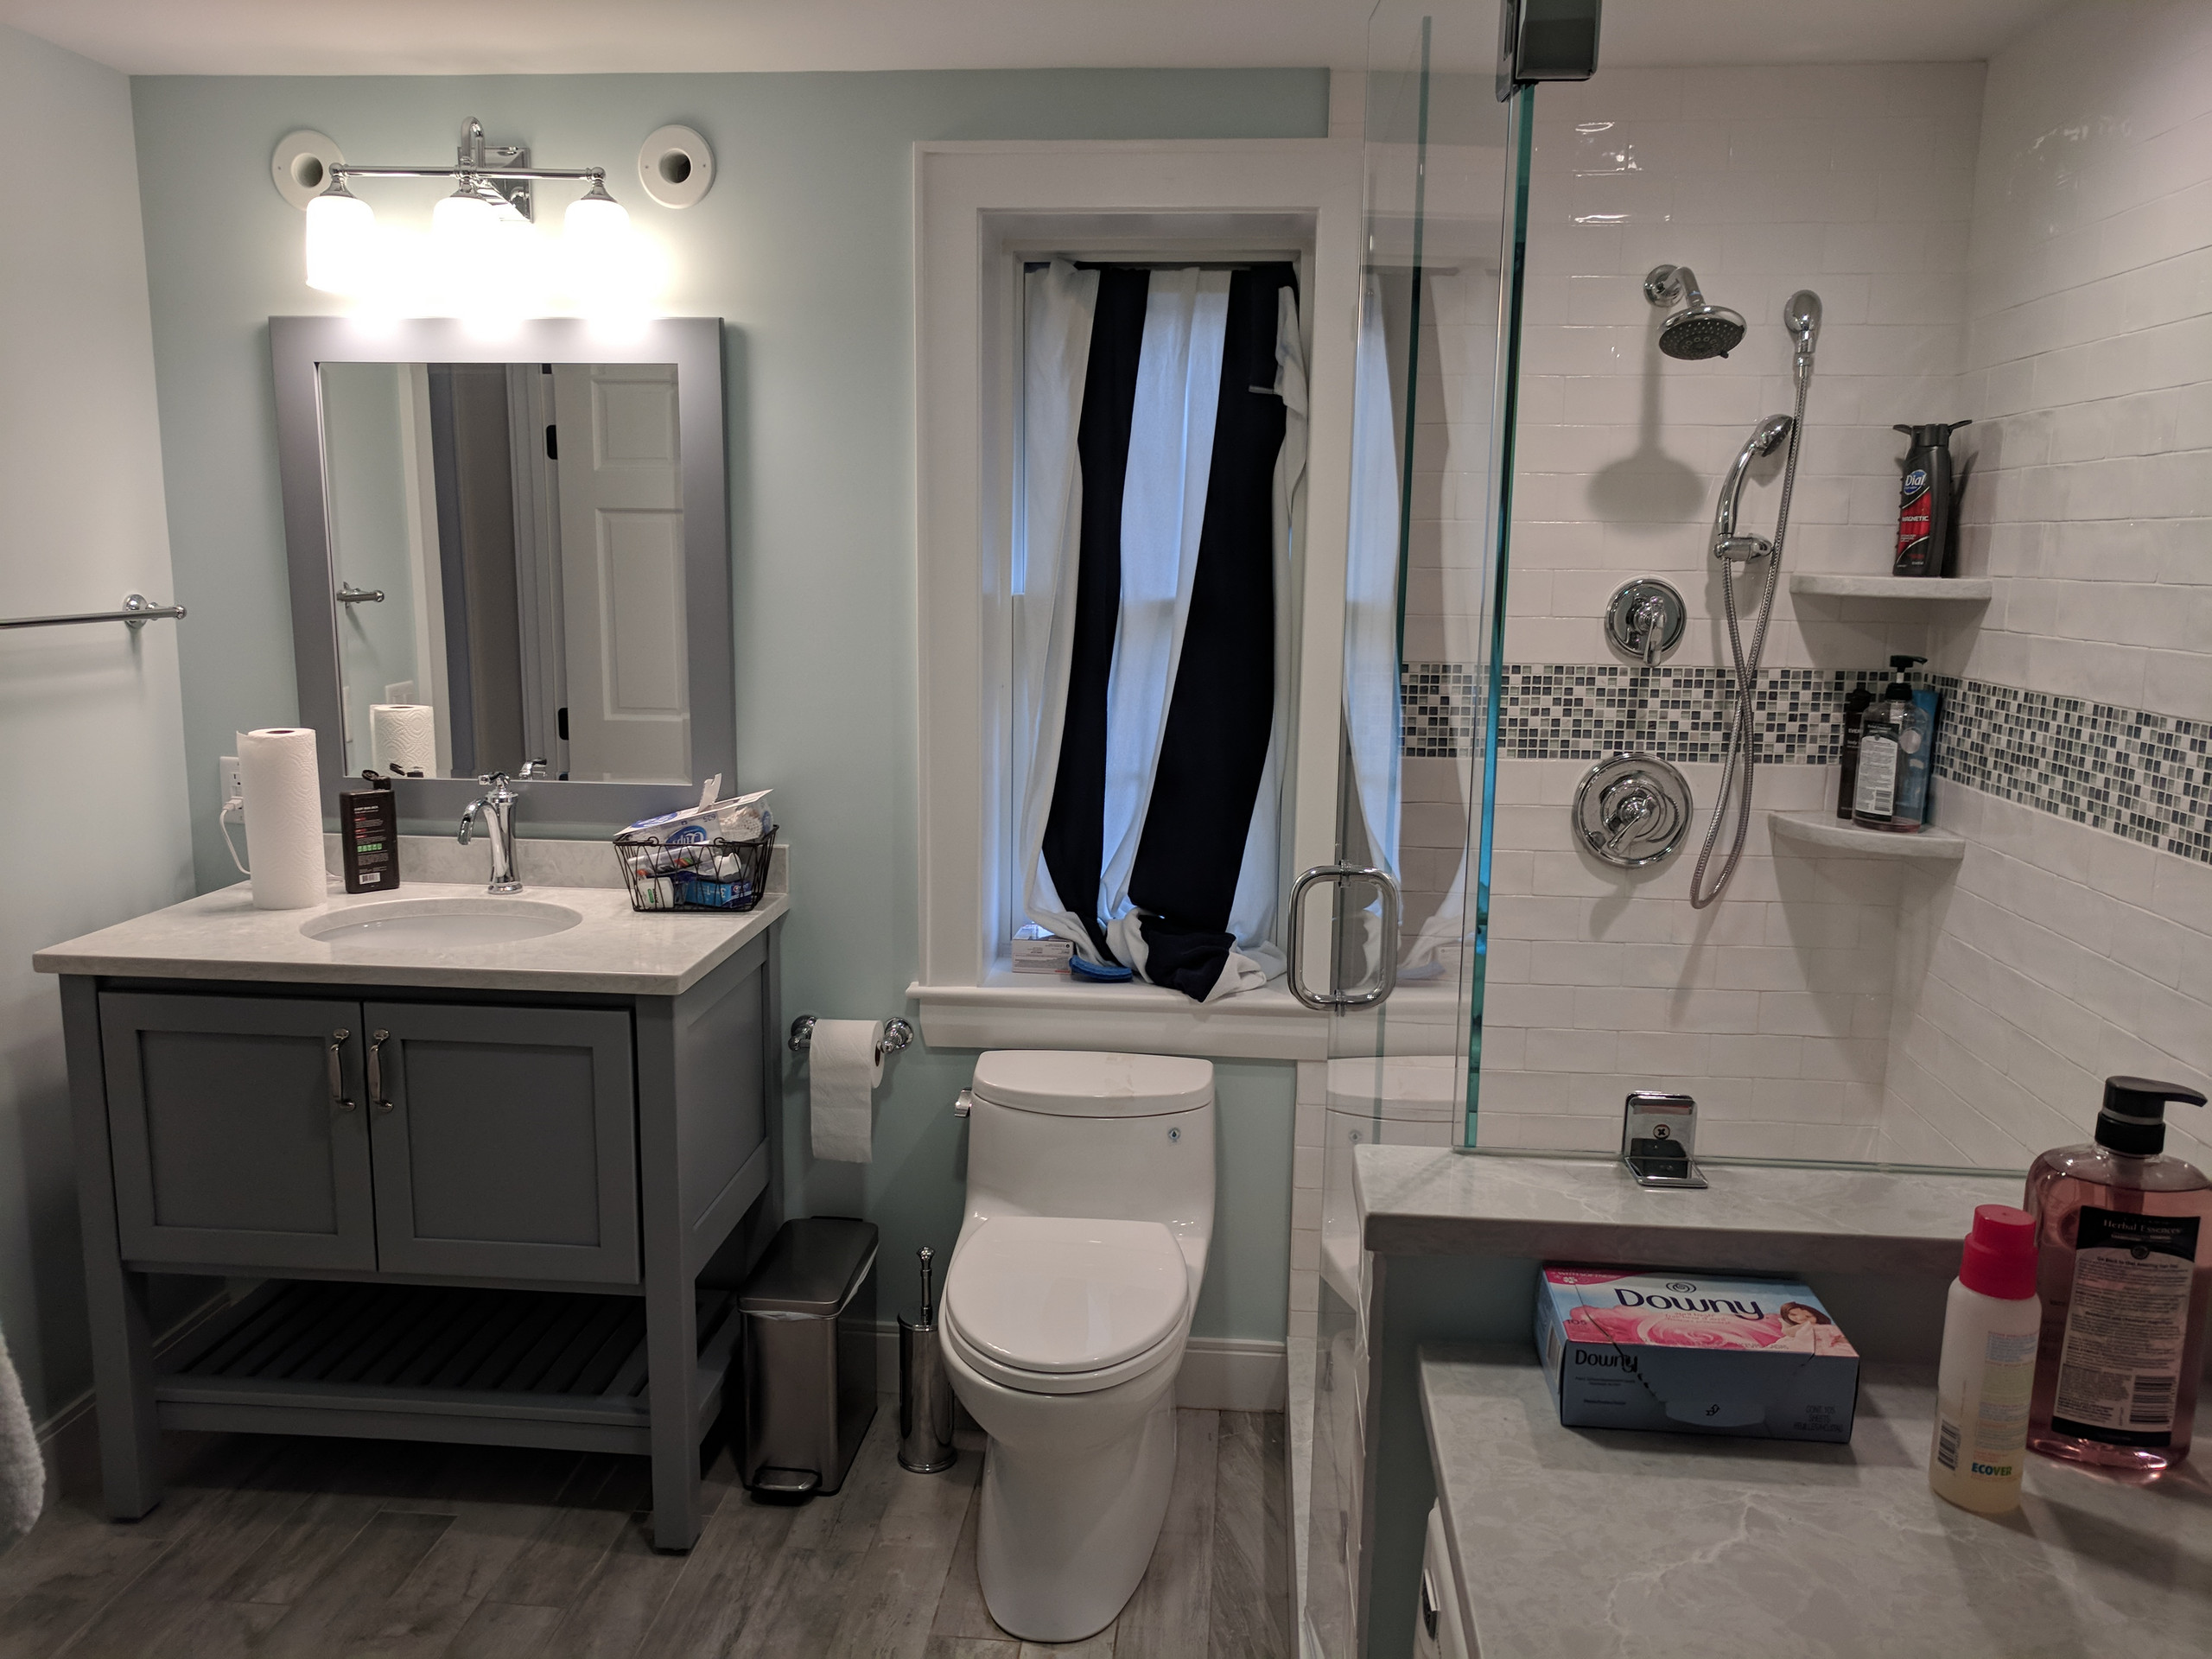 Basement bath and laundry space